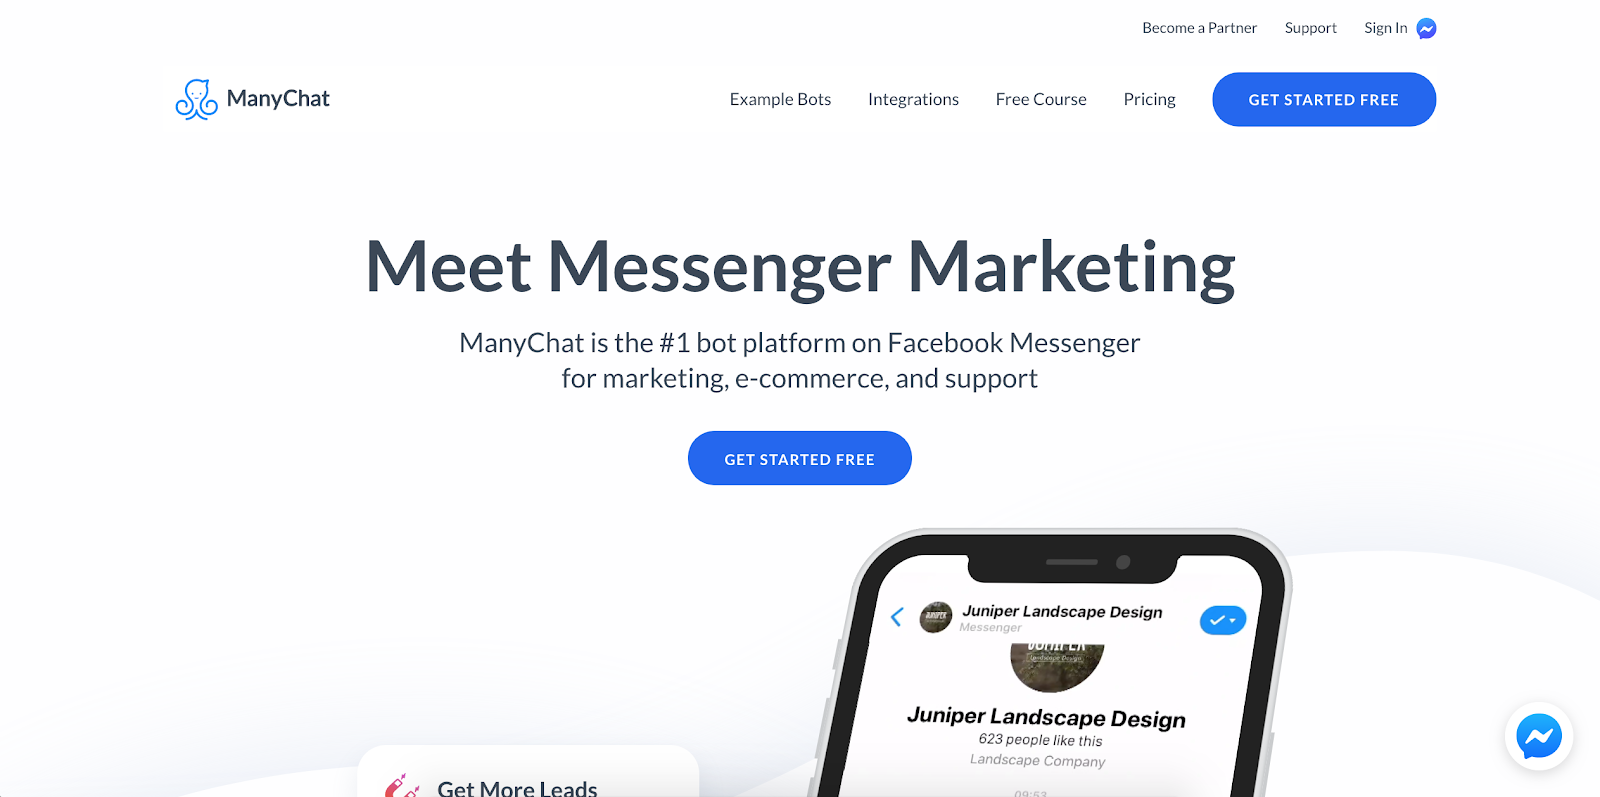 ManyChat is the first Best B2B Lead Generation Tool example | The article is 21 of the Best B2B Lead Generation Tools for 2020